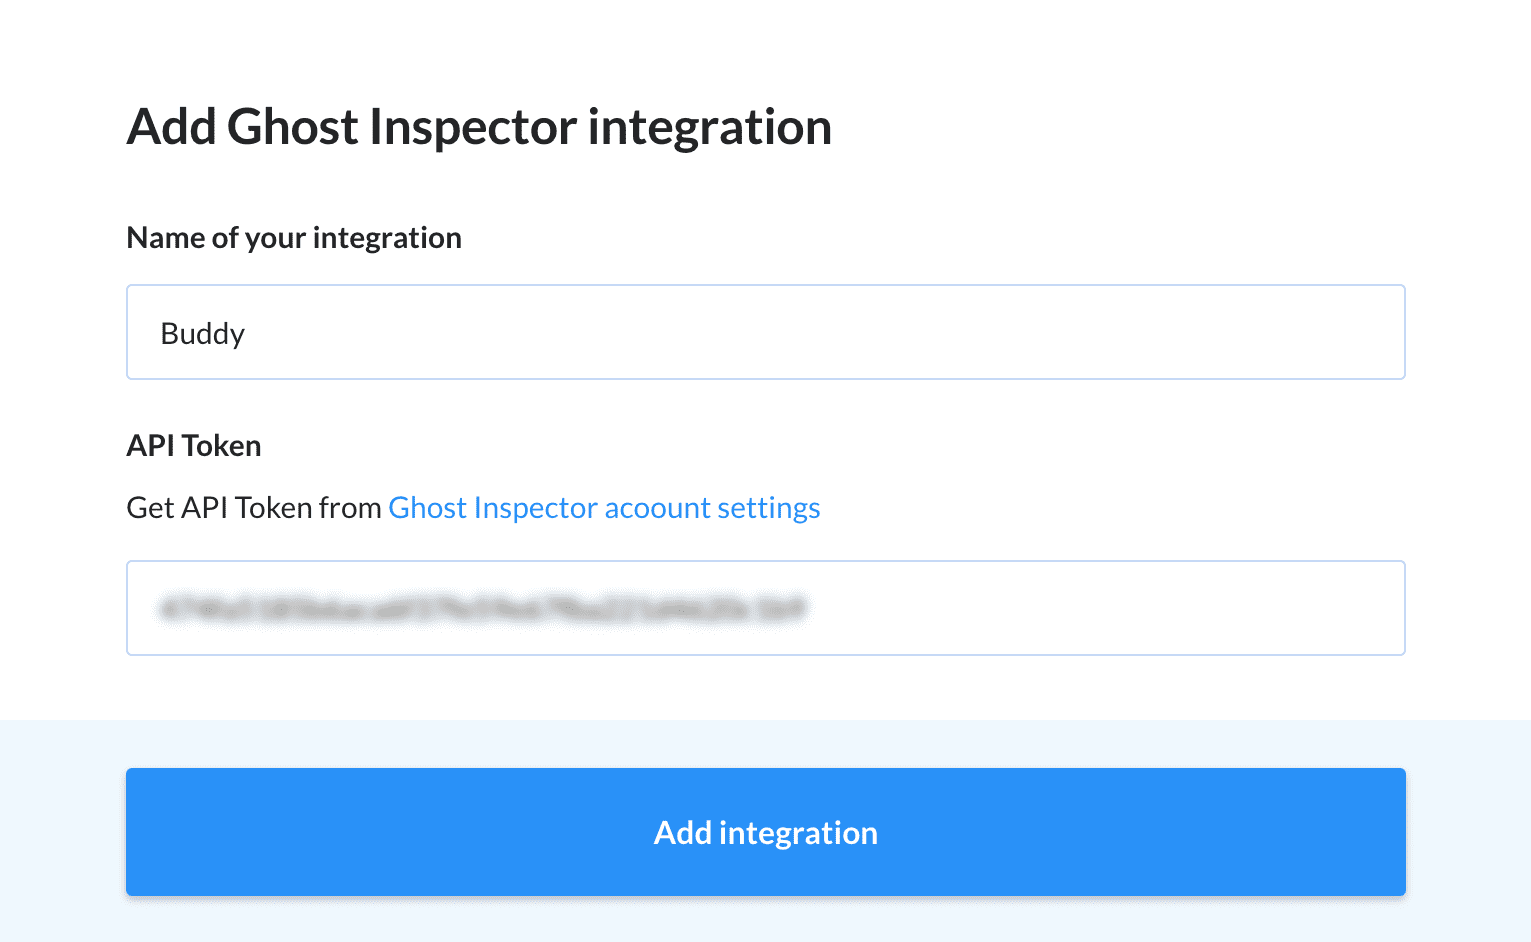 Adding a Ghost Inspector integration